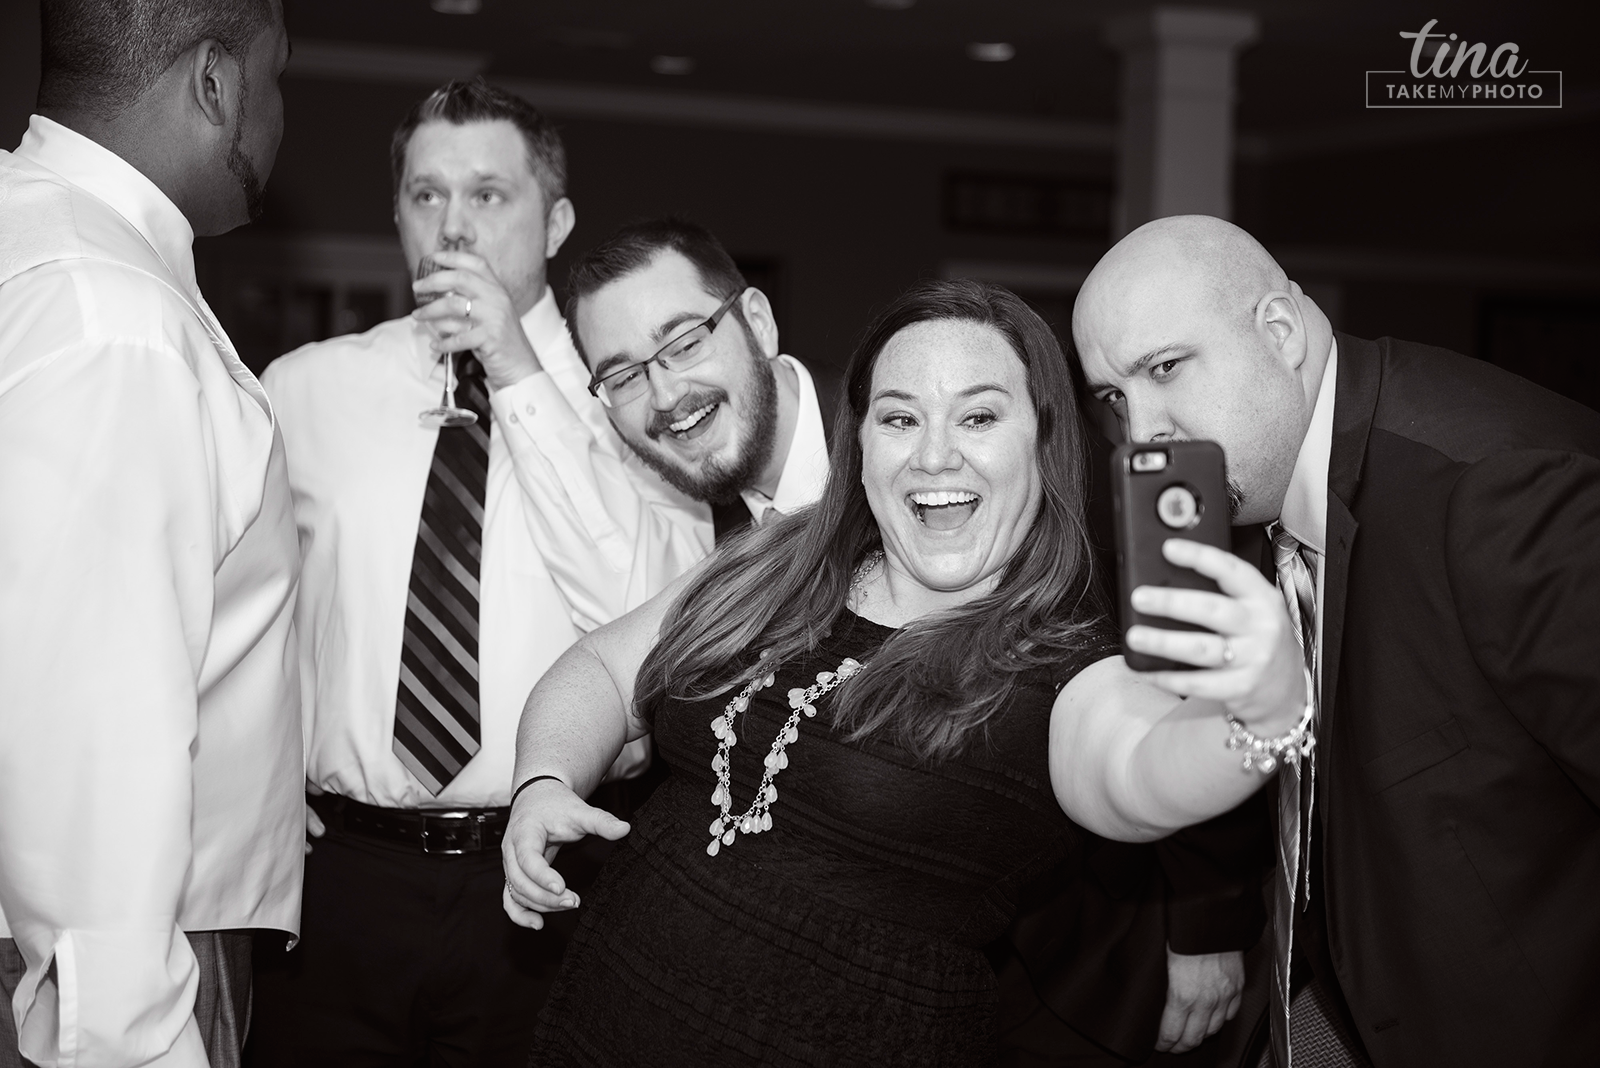 wedding-photographer-reception-guests-fun-slefie-summer-brandermill-country-club-virginia